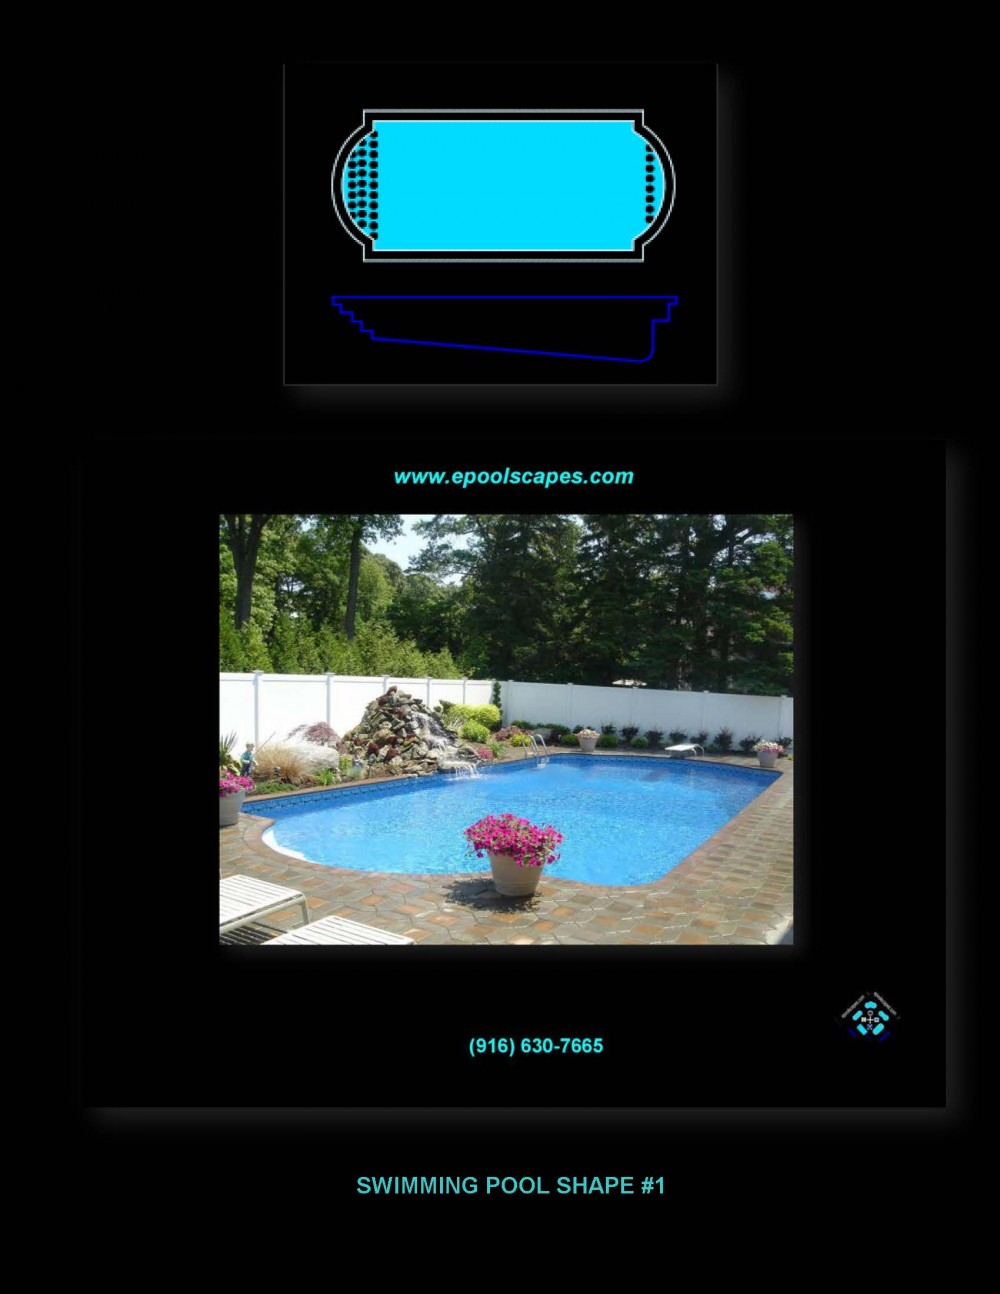 Pool Shape #1